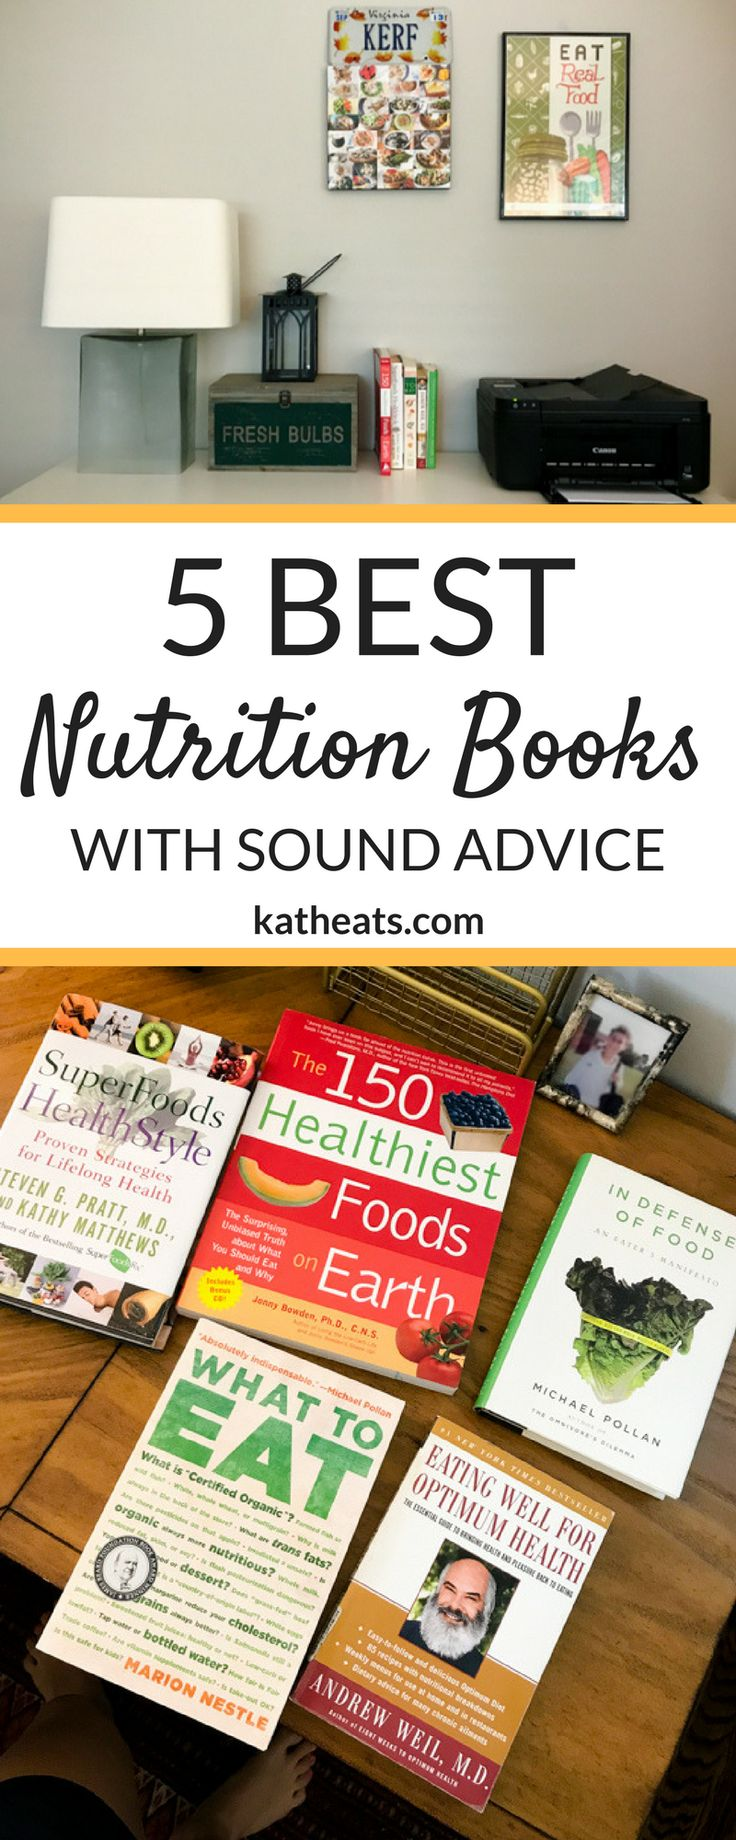 There are plenty of books and movies out there that give biased, cherry-picked nutrition advice - and those aren't the ones I agree with as a registered dietitian. Here are my top 5 nutrition books that give sound advice for making healthy lifestyle changes!